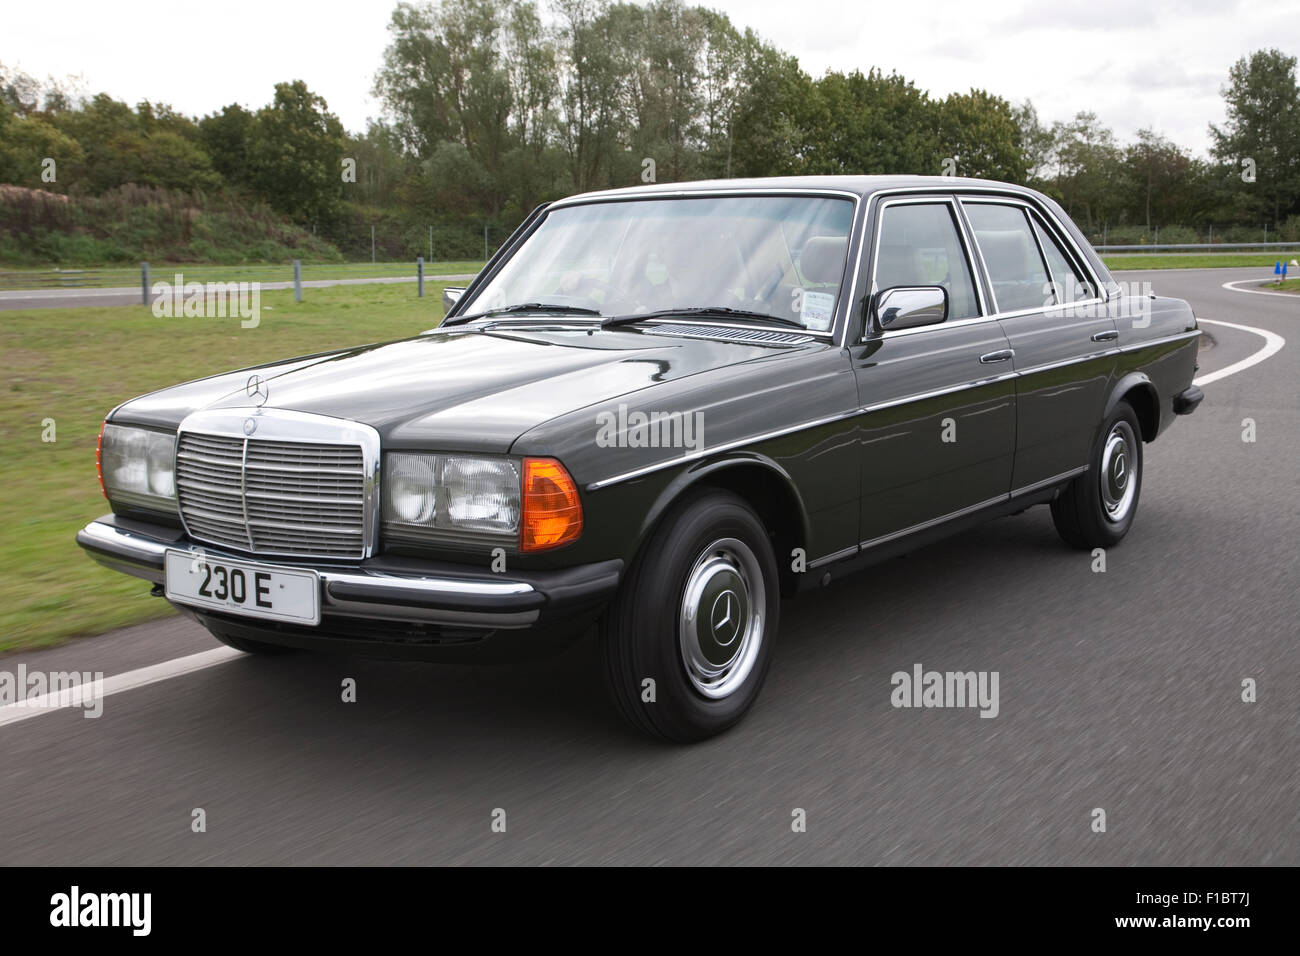 Classic mercedes benz w123 1970 39 s saloon car stock photo for Mercedes benz w123